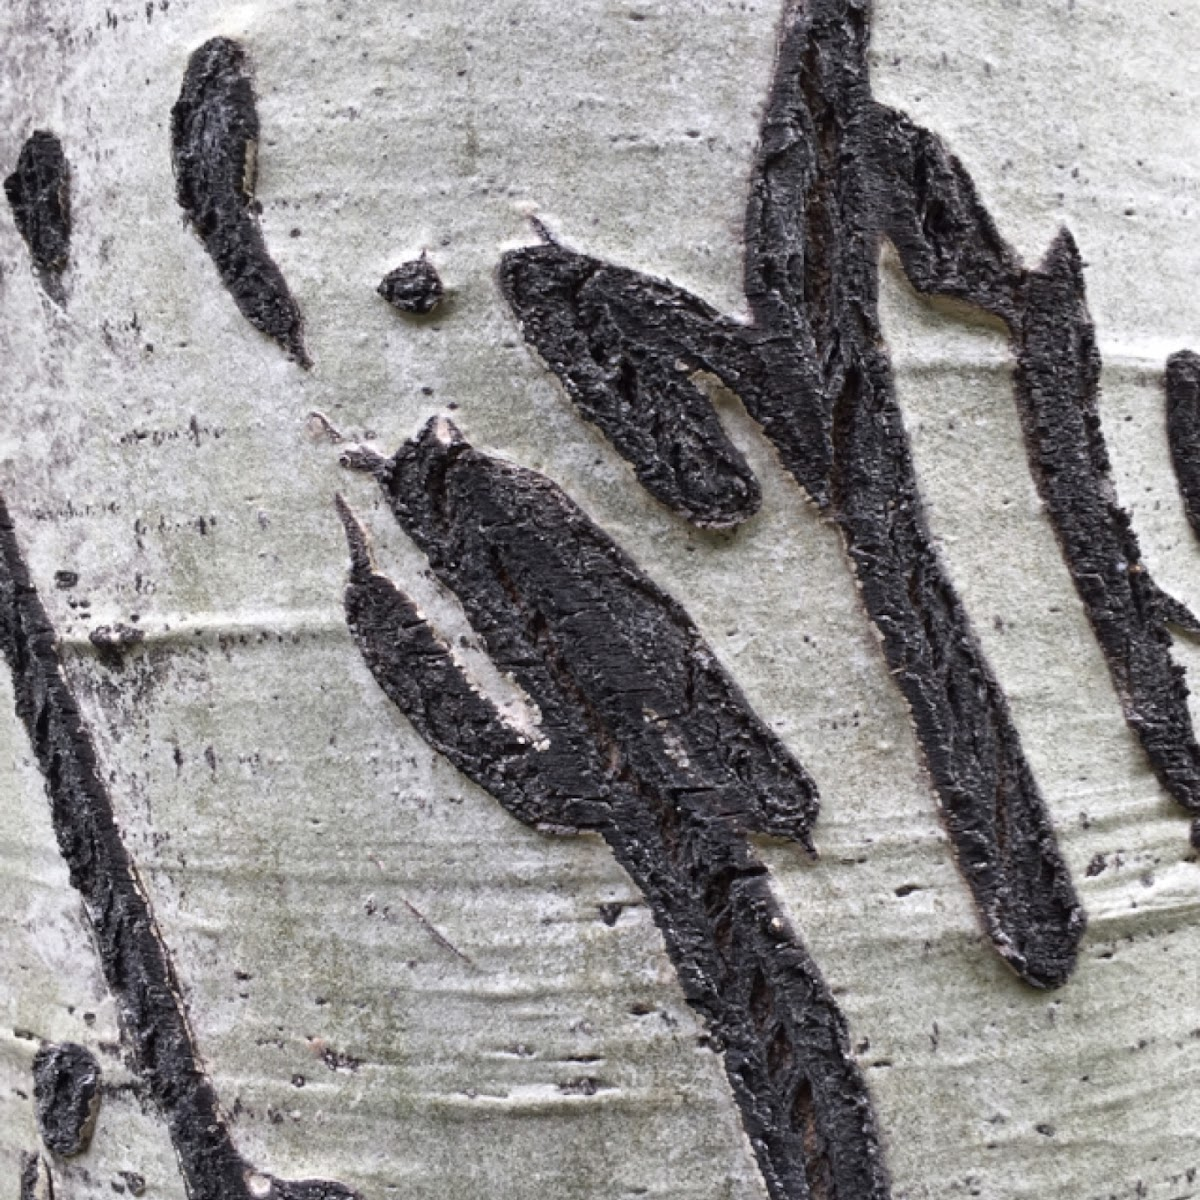 Quaking aspen (with bear claw marks)